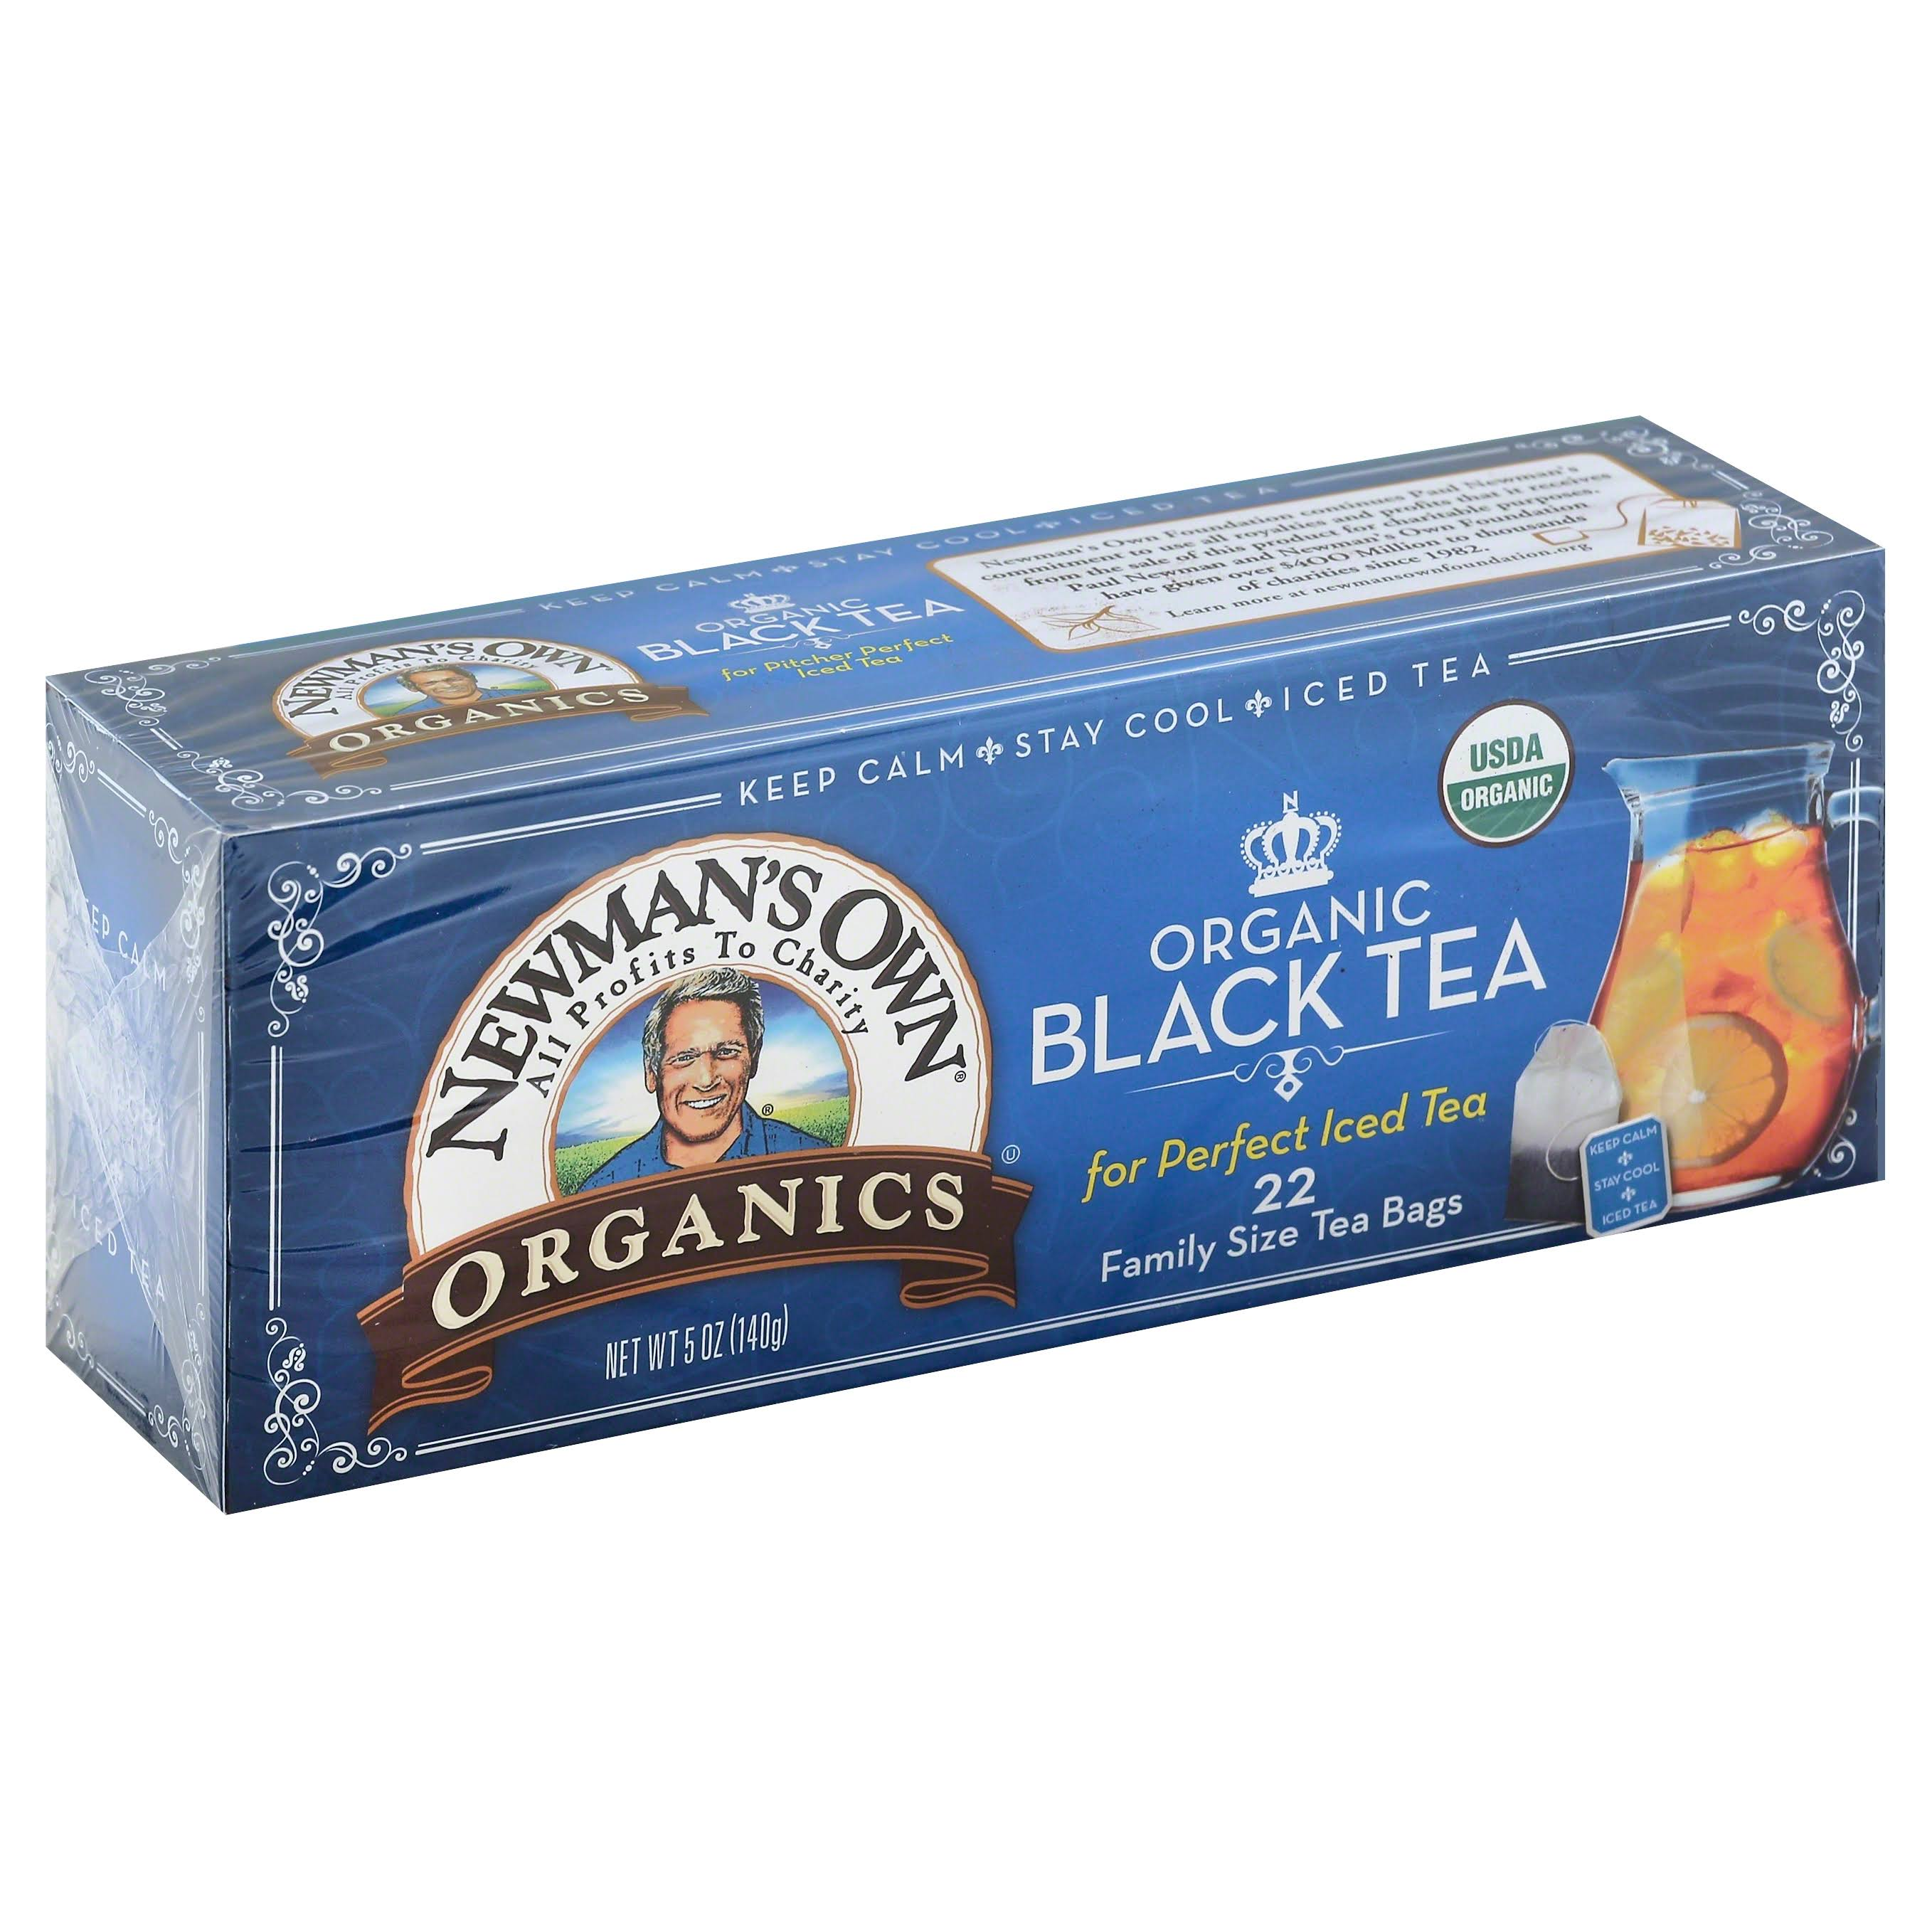 Newman's Own Organics Organic Royal Black Tea - 22 Tea Bags, 4.95oz